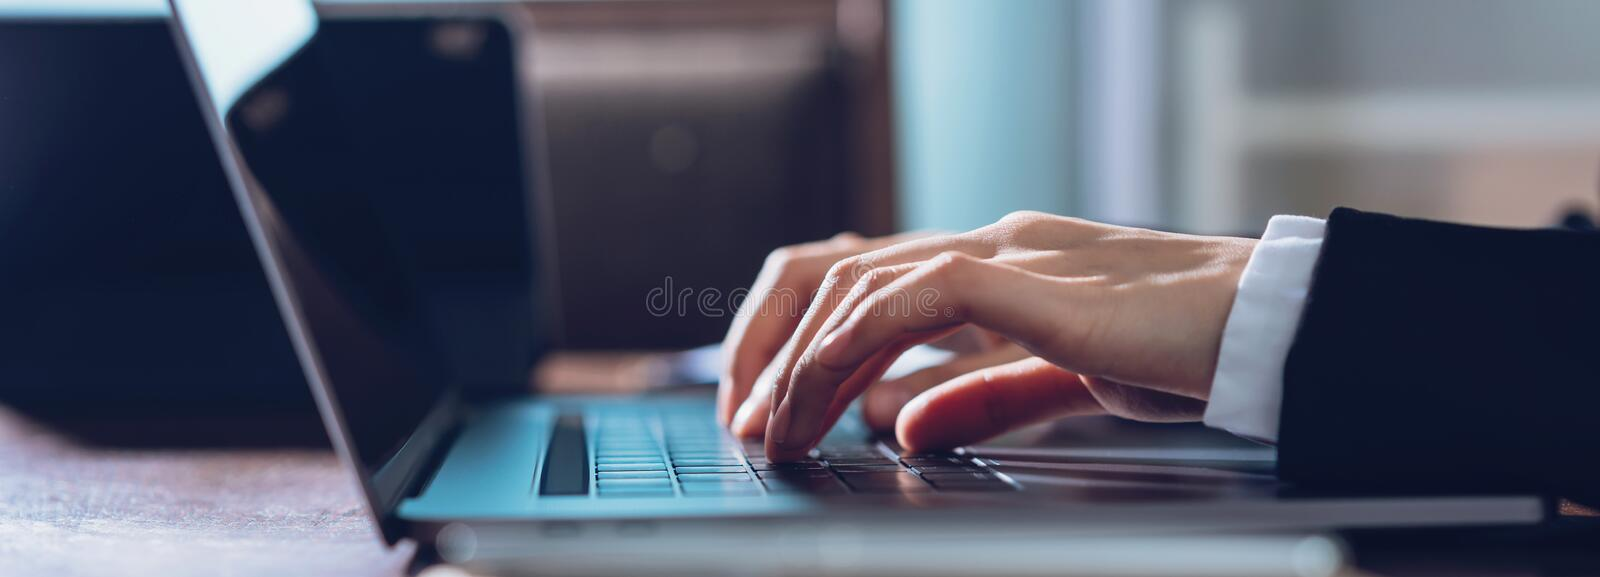 Close up of business woman hands typing on laptop computer and searching web, browsing in the workplace at office. royalty free stock photo